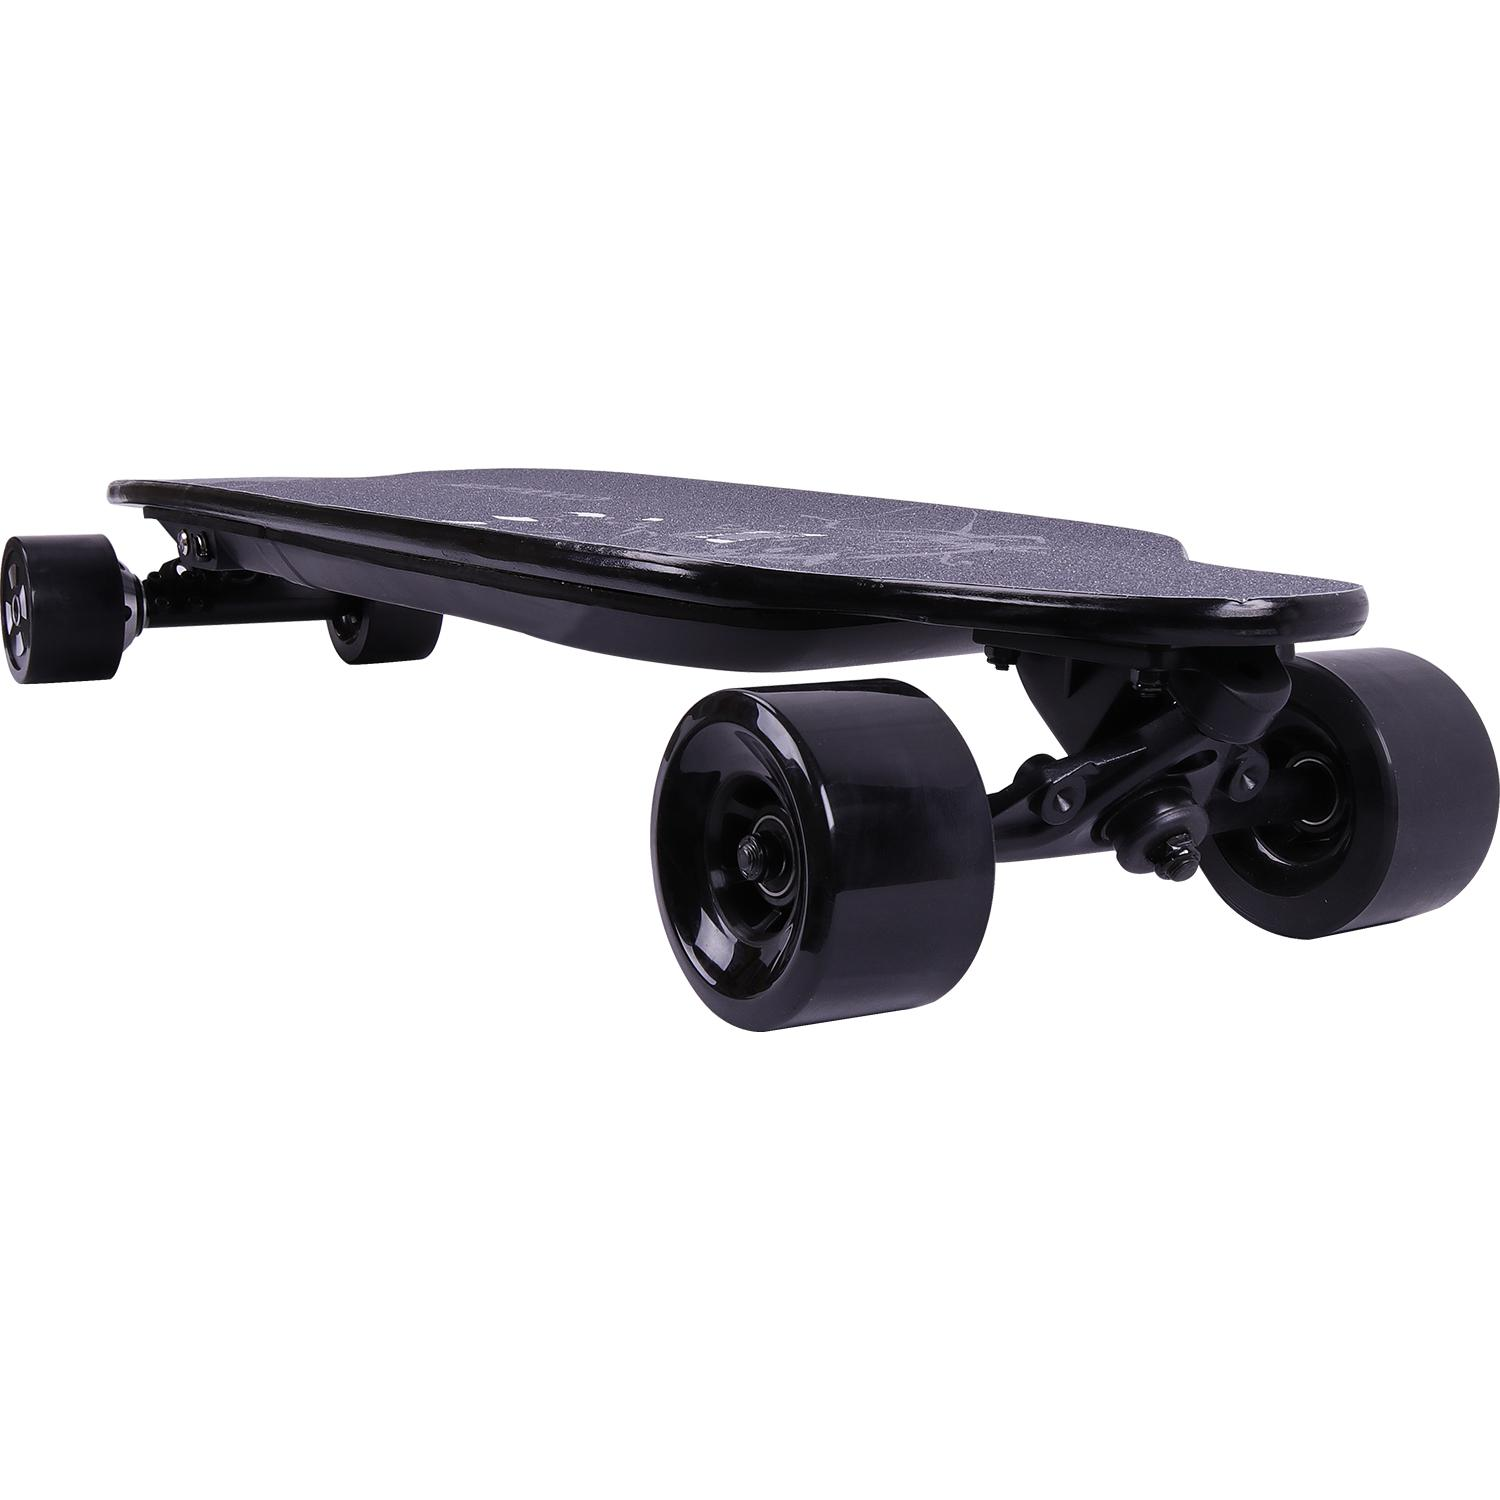 Remote Control Skateboard >> Electric Skateboard 4 Wheels Longboard Remote Control Electric Scooter Adjustable 2 Speed Mode